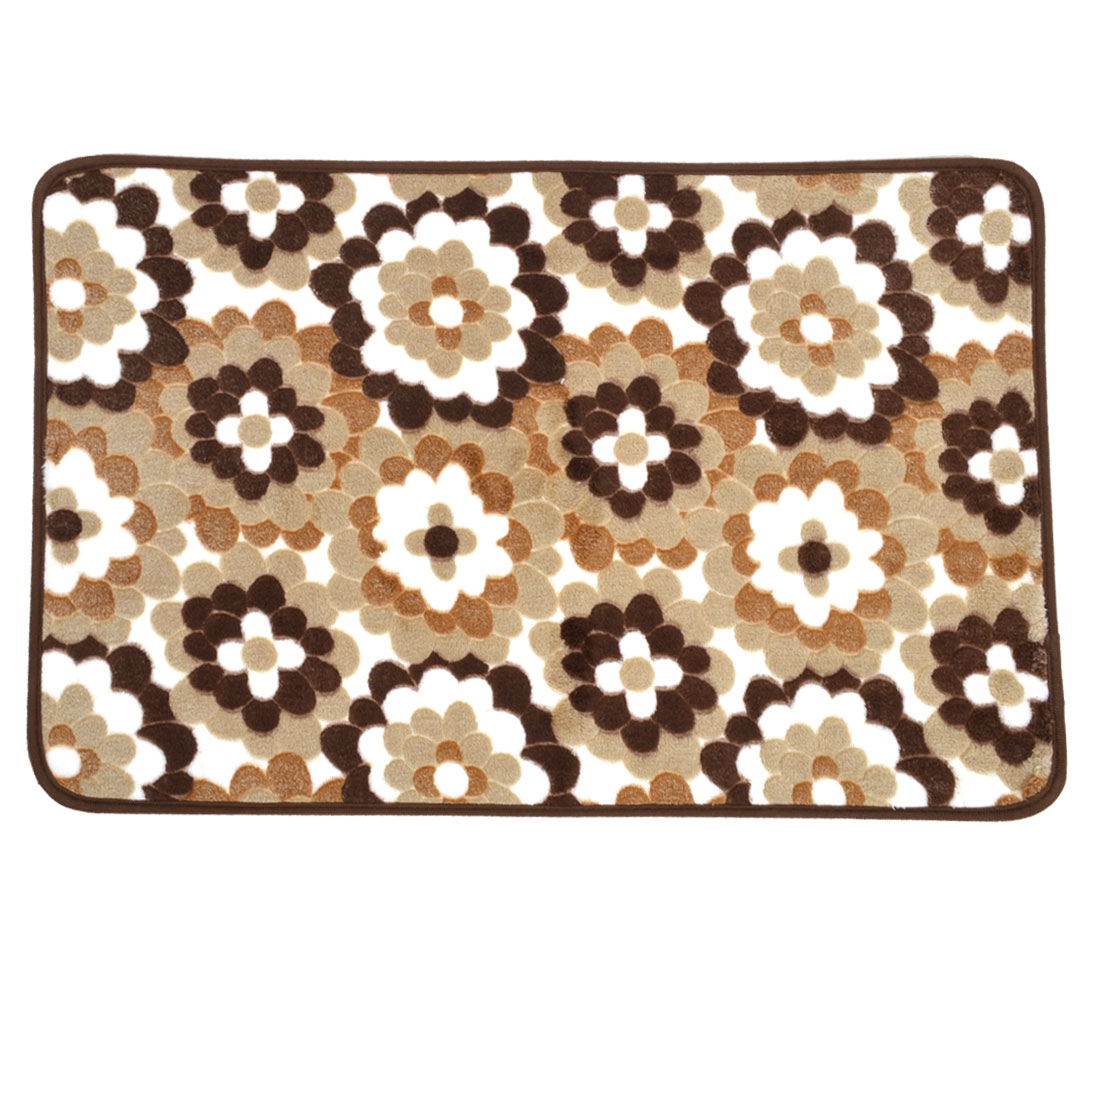 Brown Coral Fleece Sunflower Pattern Kitchen Floor Area Rug Carpet 70cm x 45cm